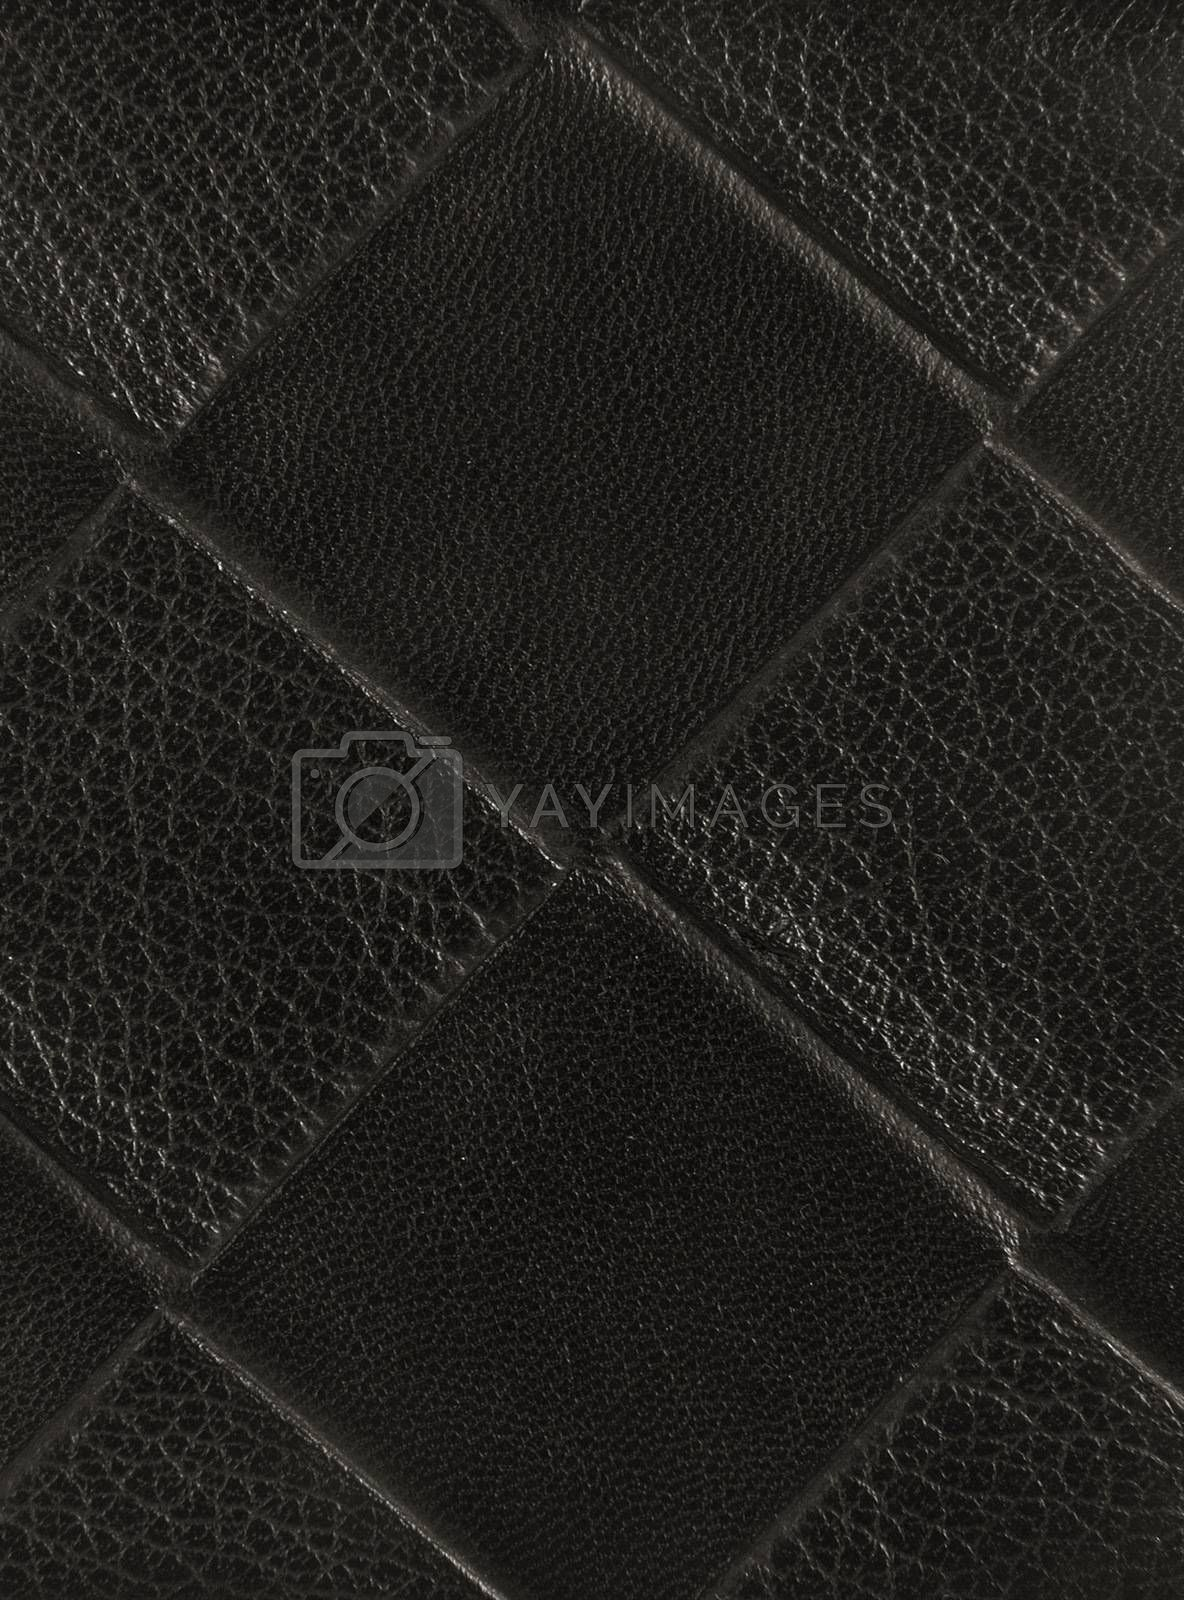 leather texture closeup as a background